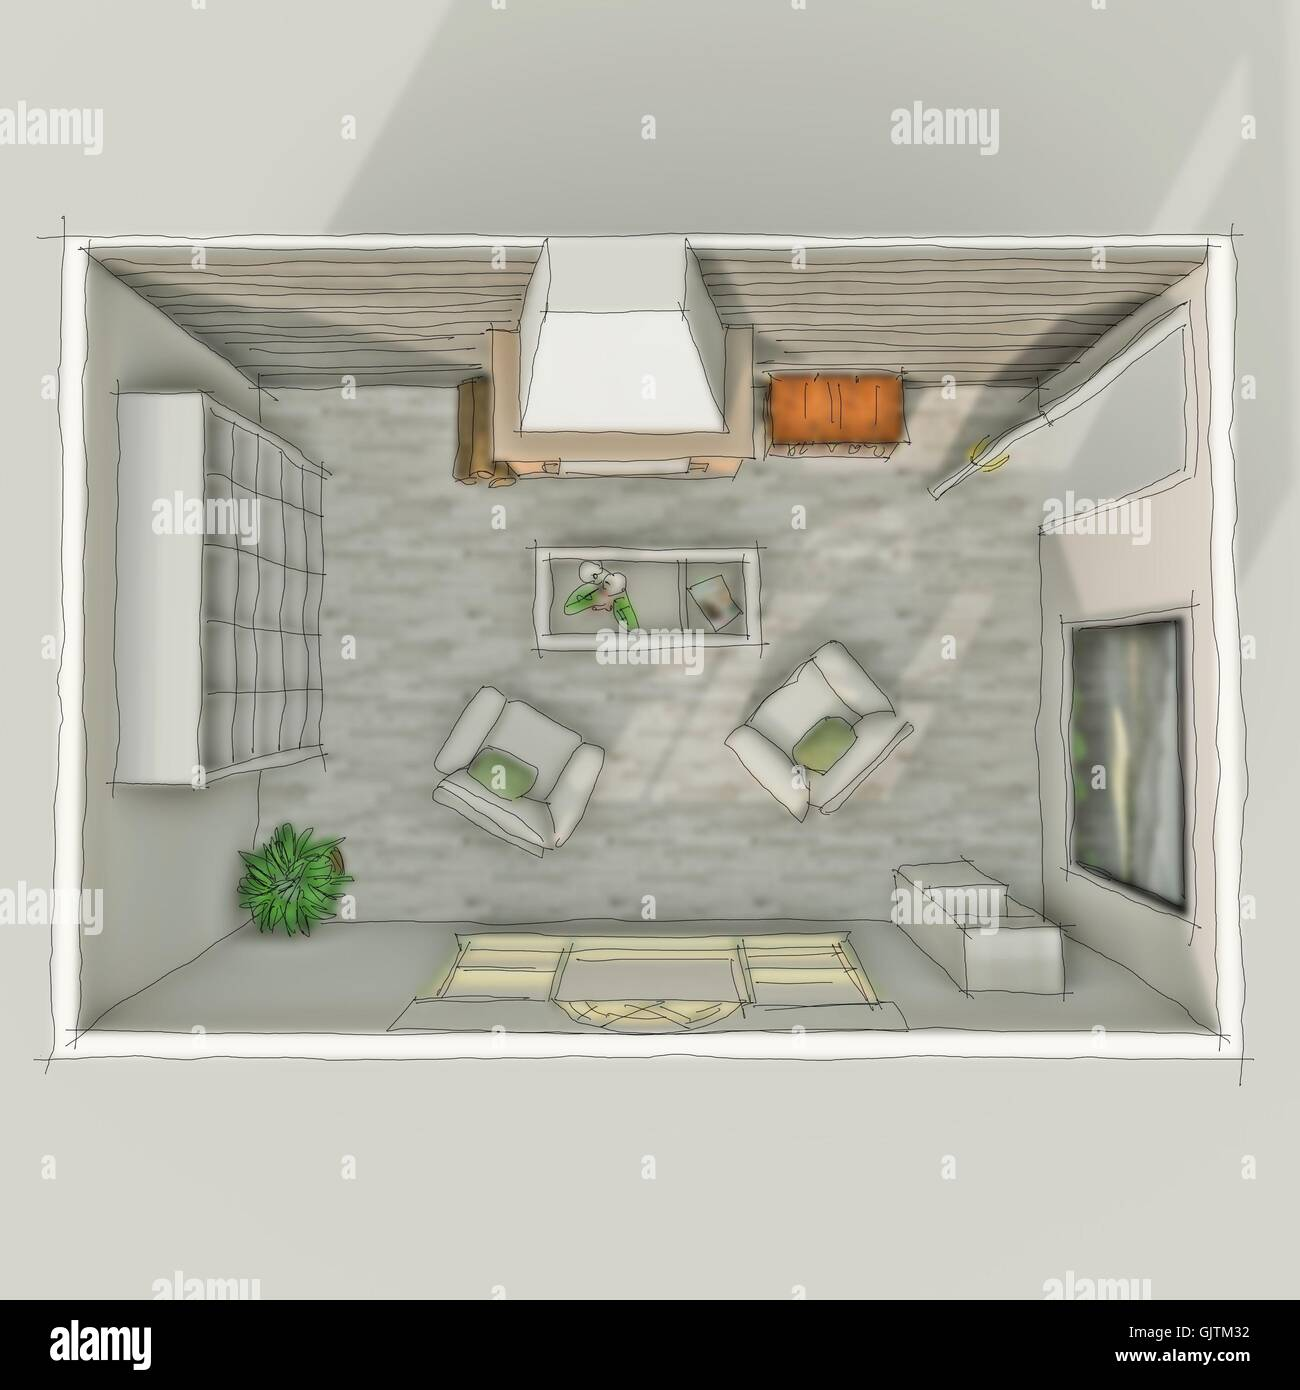 3D Freehand Sketch Drawing Of Interior Roofless Living Room With Fireplace